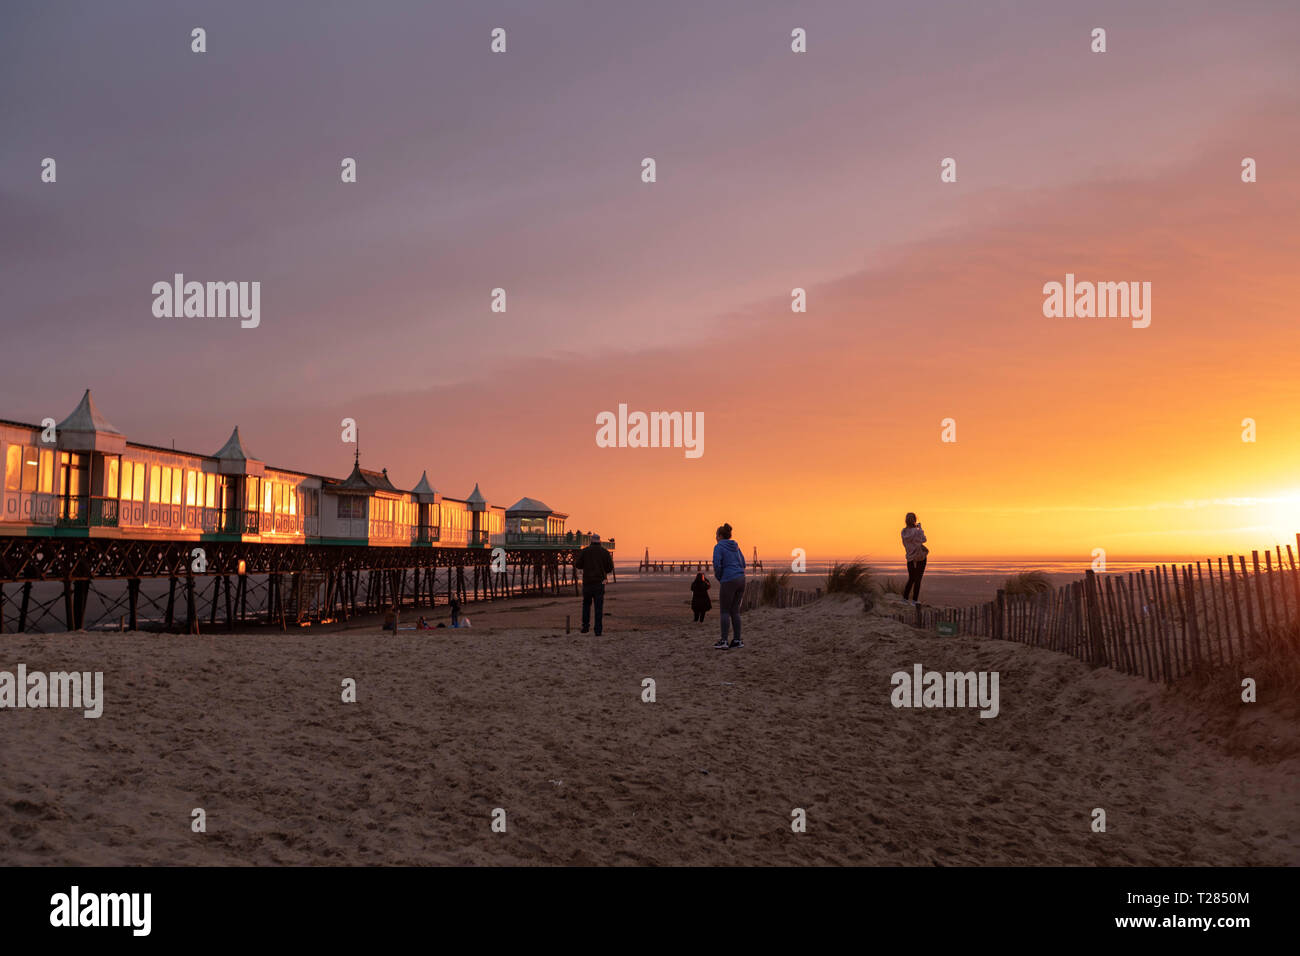 Taking pictures to St Anne's Pier, a Victorian pier, at sunset in the English seaside resort of St Anne's-on-the-Sea, Lytham St Annes, Lancashire, UK - Stock Image